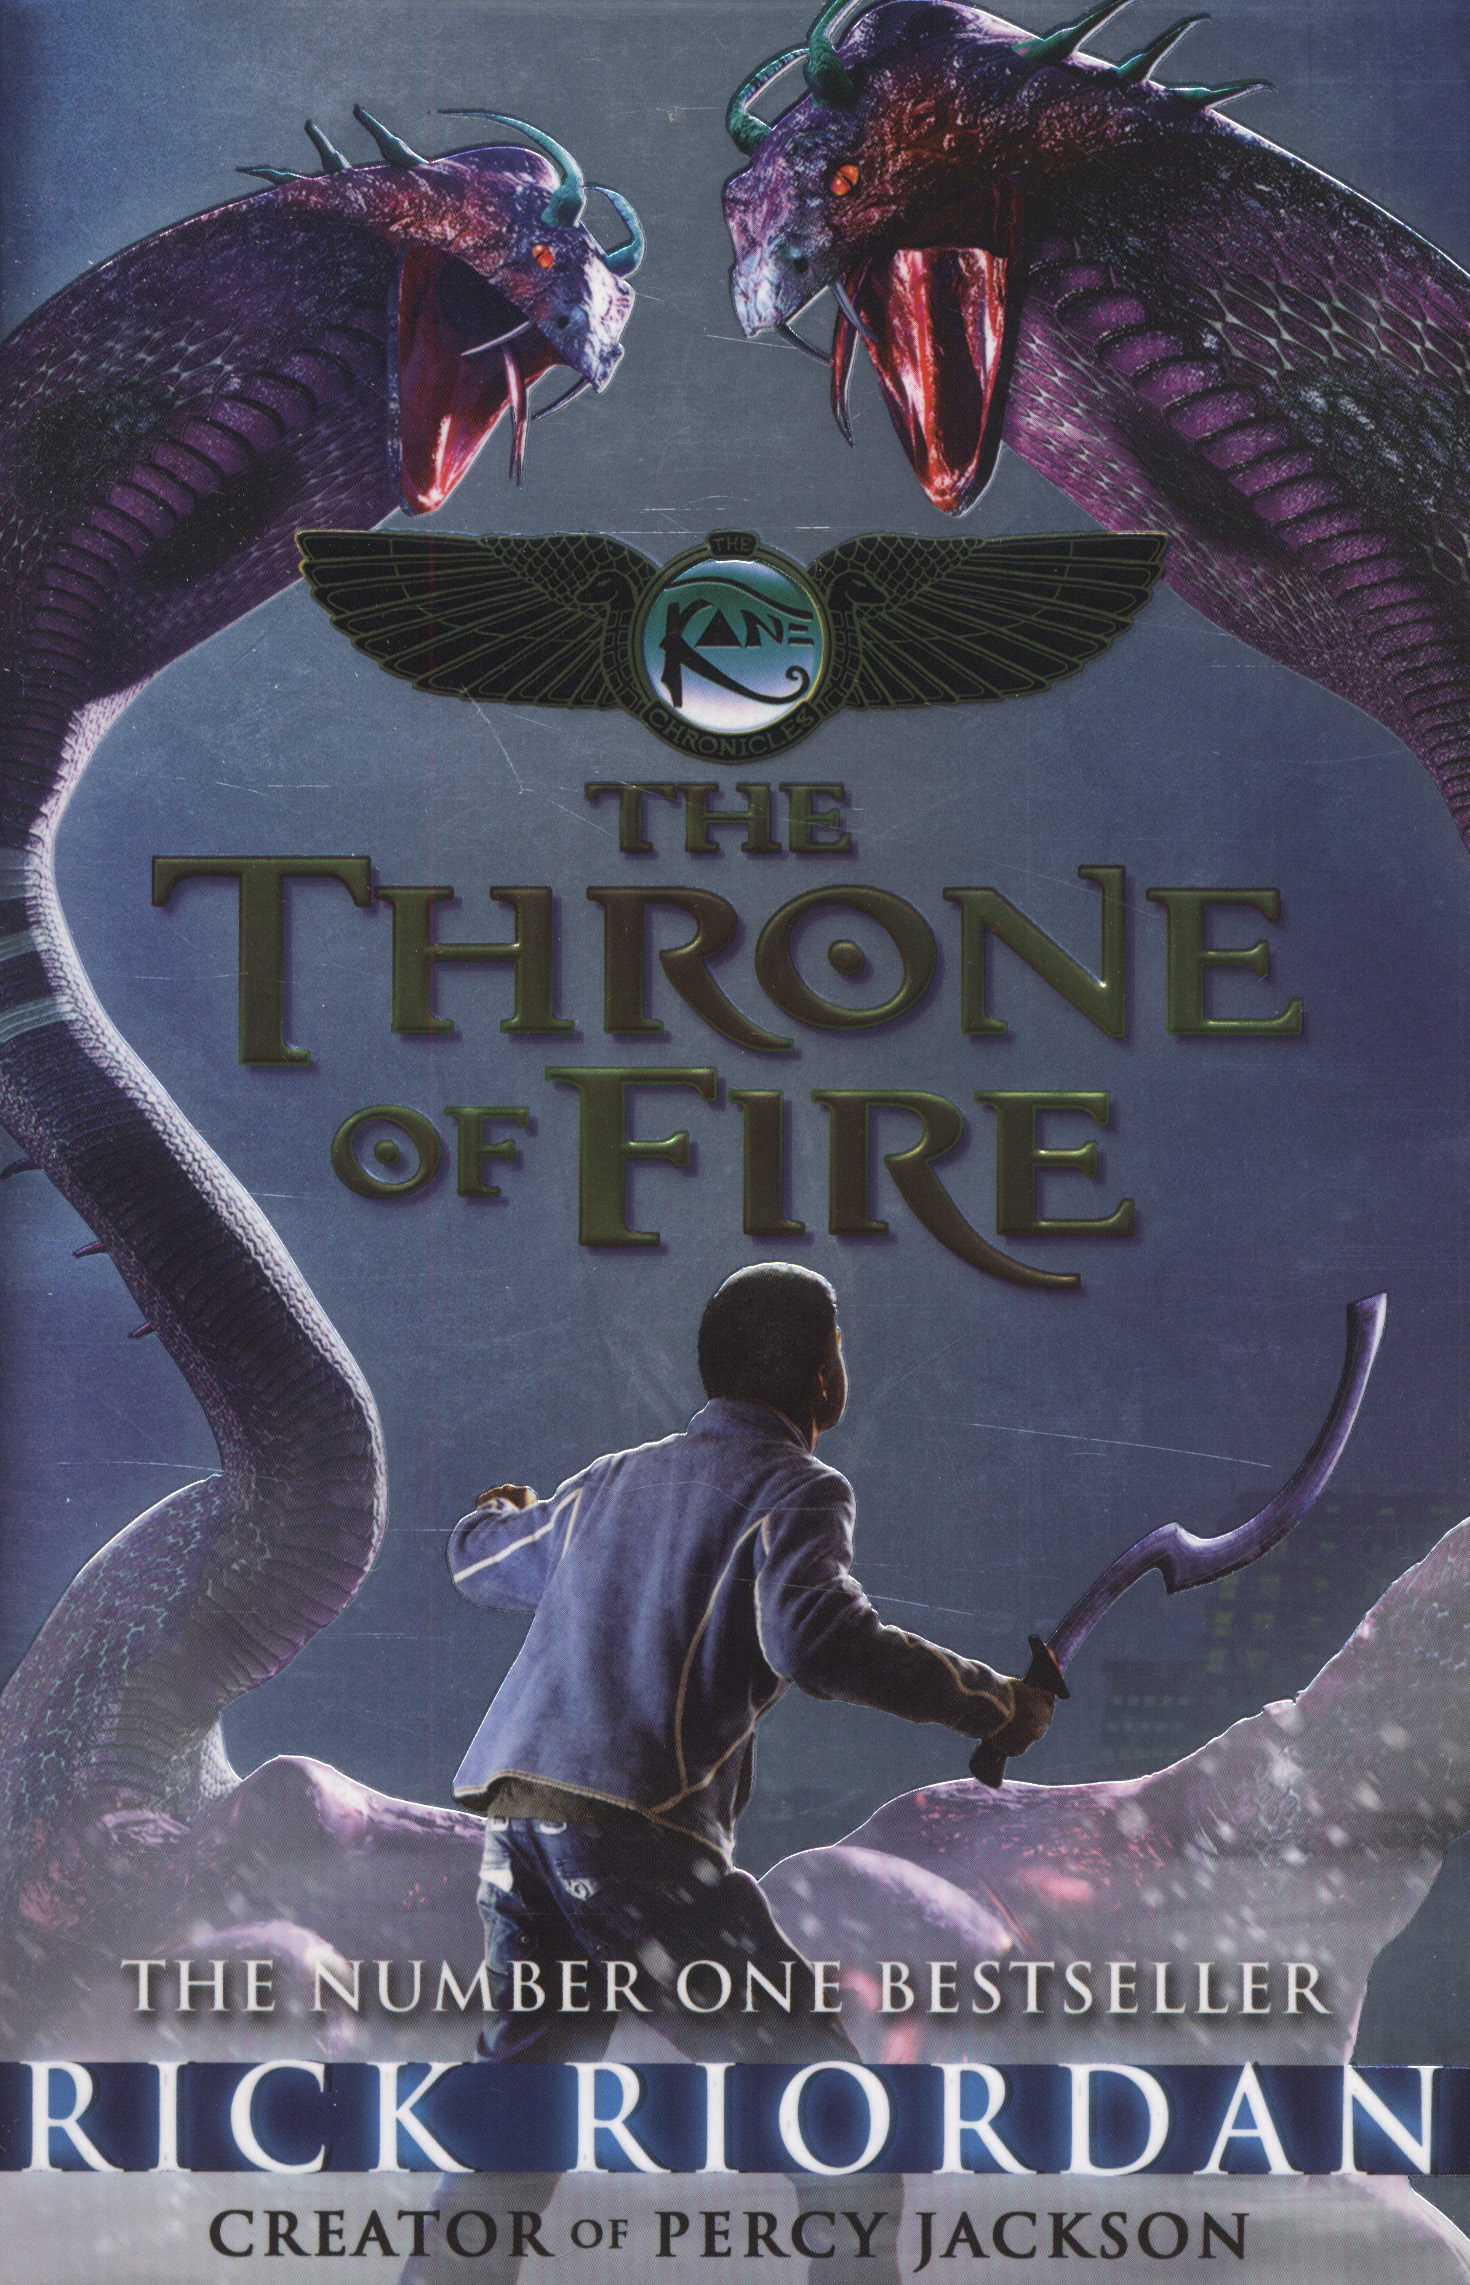 The kane chronicles: the throne of fire by rick riordan